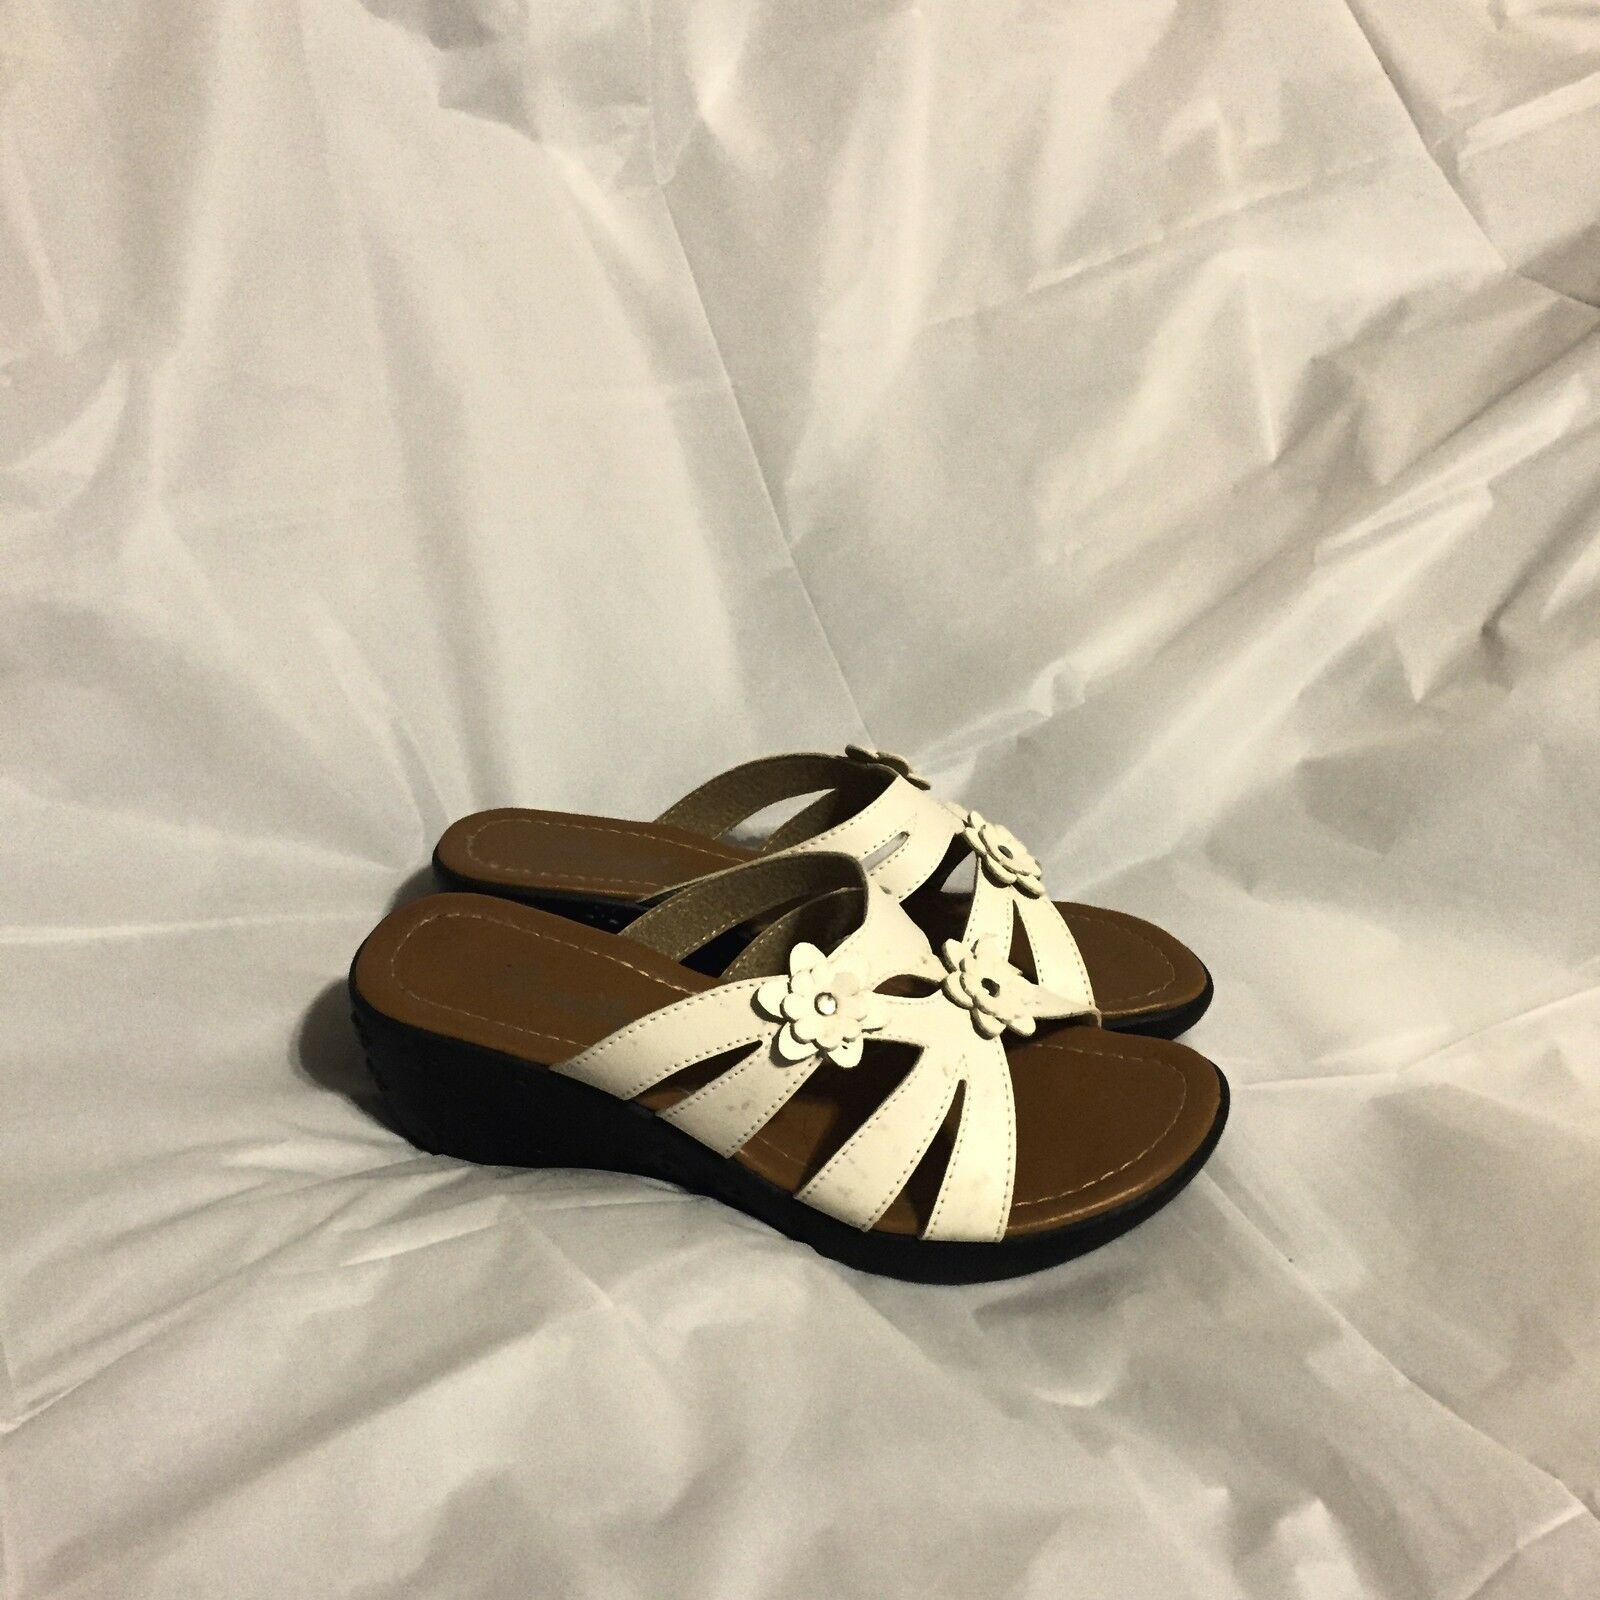 Bonita Sandals Size 6 2 White New Without Tags 2 6 1/2